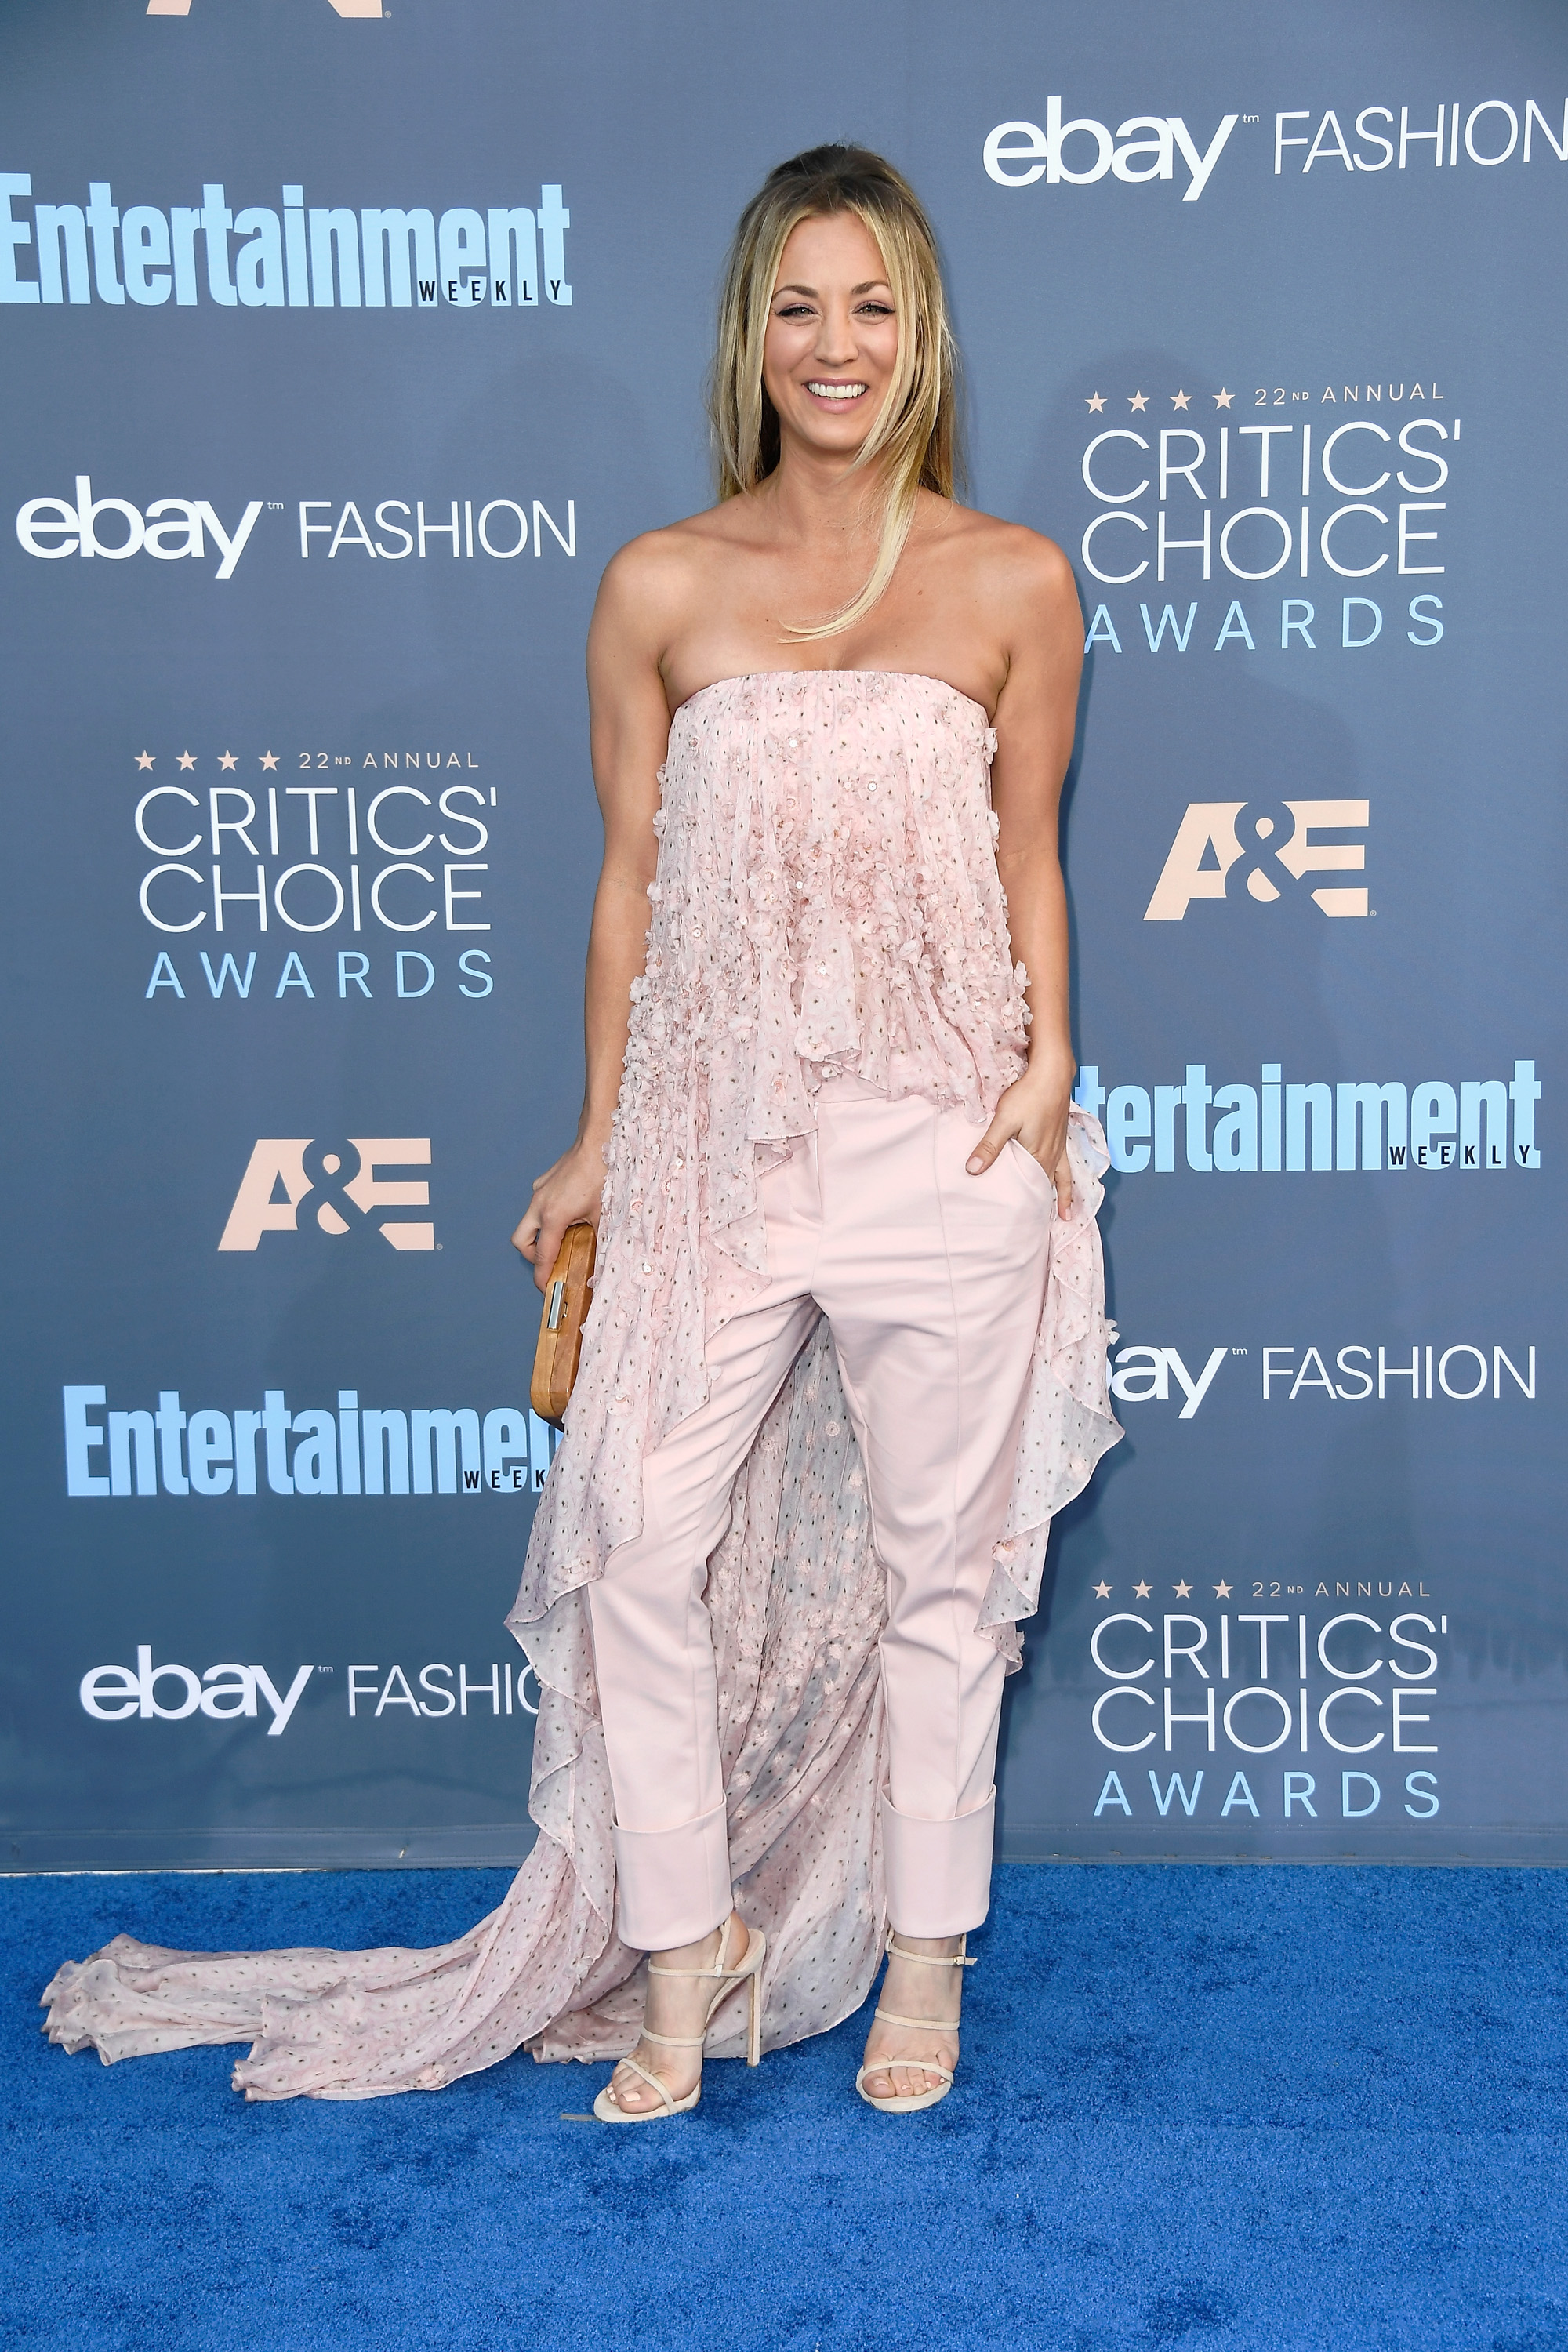 The 10 worst-dressed celebrities at the Critics' Choice Awards who should fire their stylists before the Oscars.